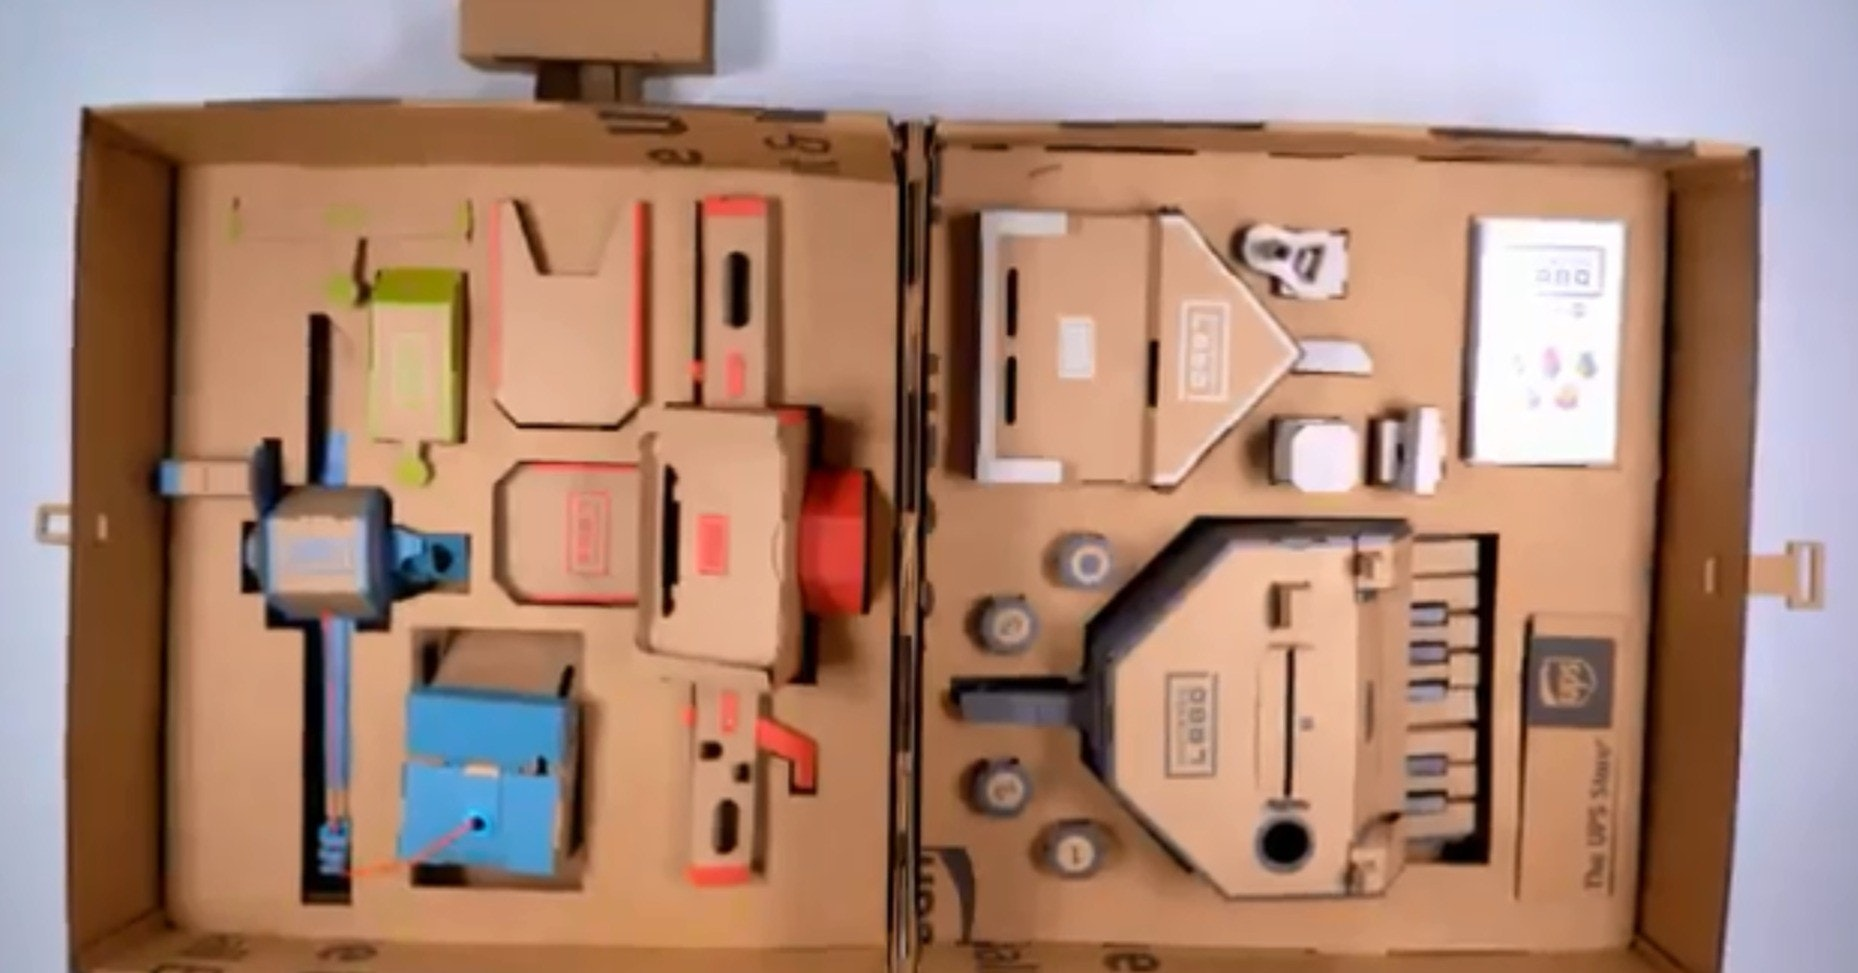 Nintendo Labo, Wii, Final Fantasy, Nintendo, , Video game, The Last Story, Video Game Consoles, PlayStation 4, Xbox 360, Nintendo Labo, product, product design, home, furniture, electrical wiring